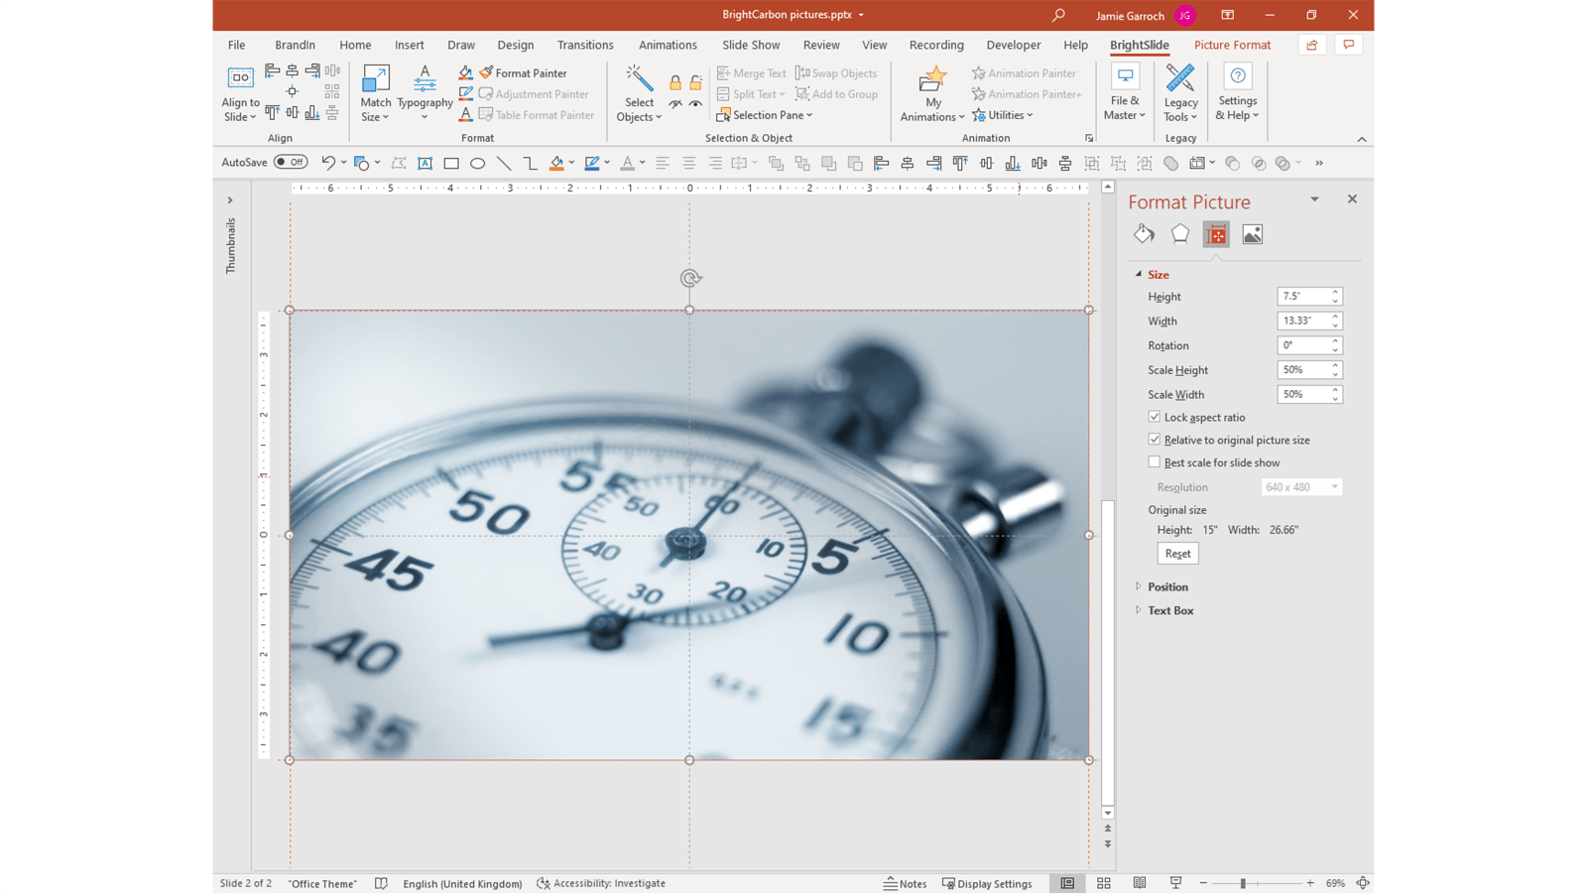 screenshot of HD1080p picture inserted into PowerPoint at 72dpi